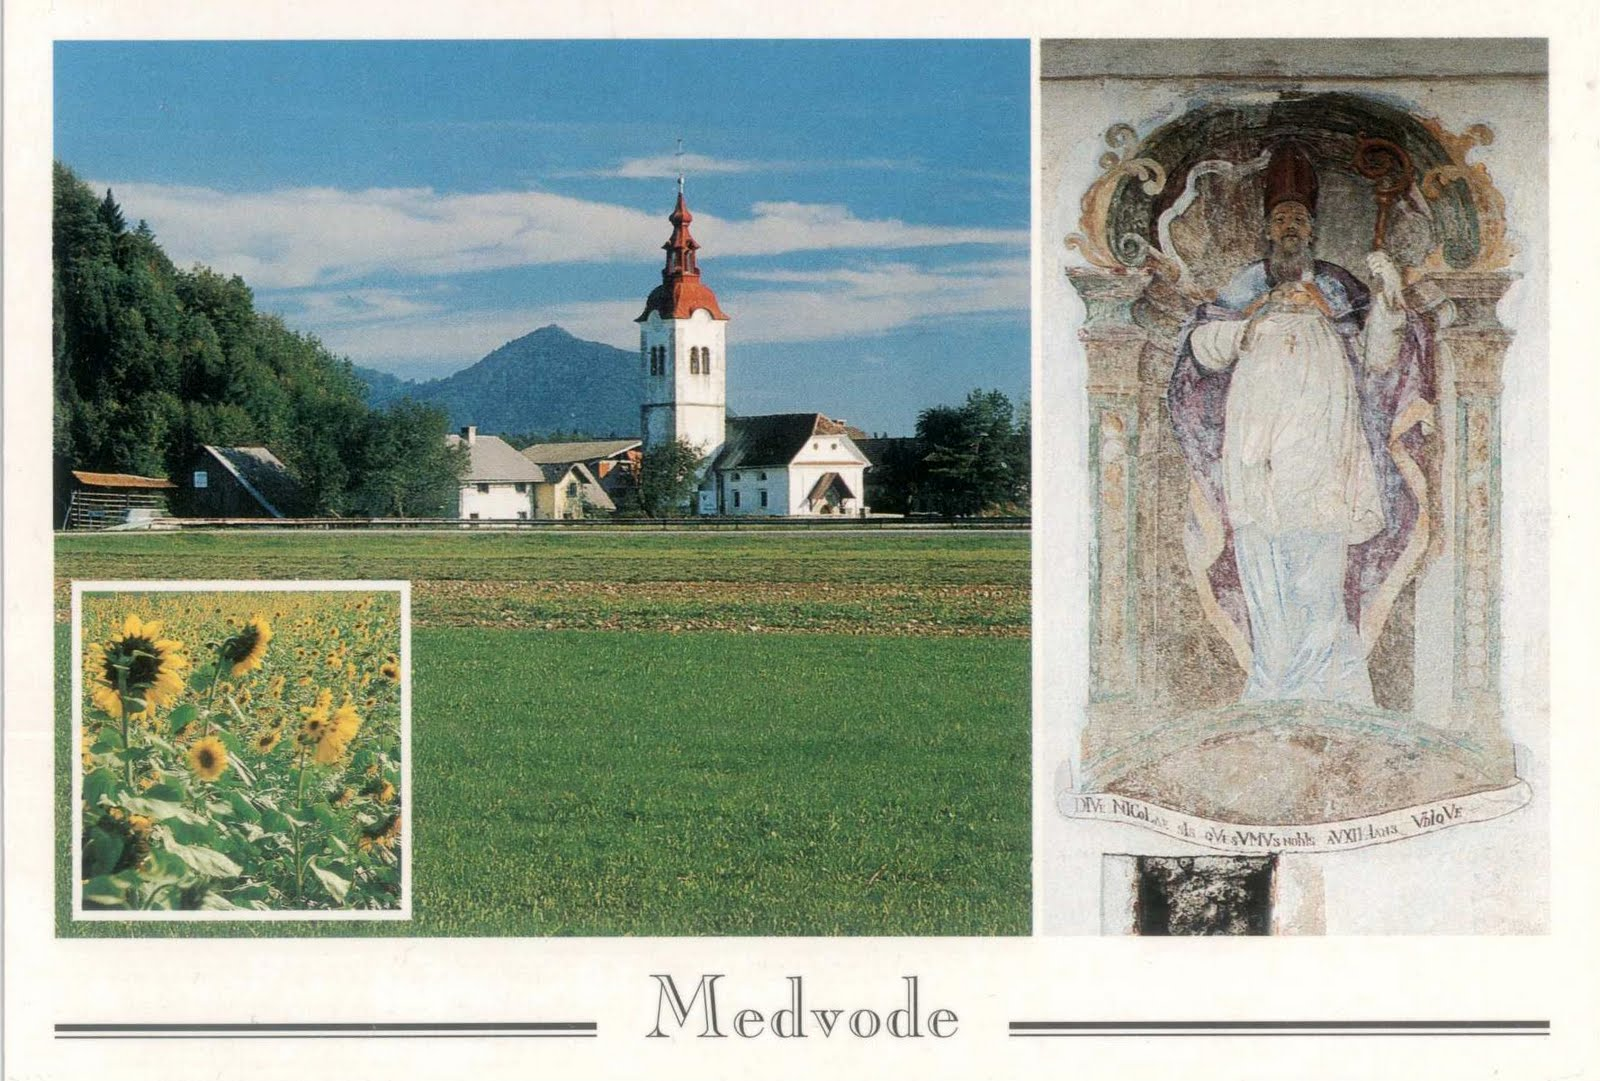 medvode mature personals Preska pri medvodah's wiki: is a former settlement that is part of the town of medvode in the upper carniola region of dating from 1741 and reworked in the.